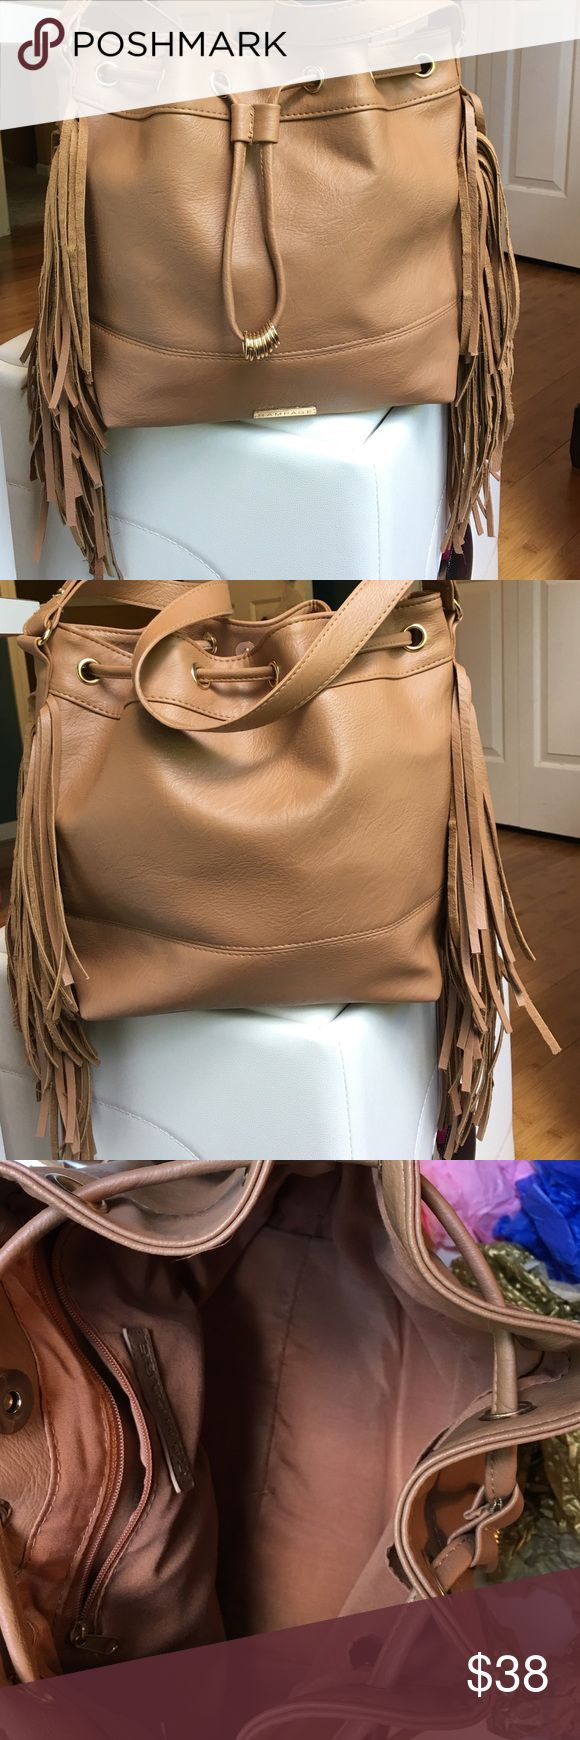 "TAN RAMPAGE LARGE DRAWSTRING FRINGE BAG A MUST HAVE! Super cute! Super stylish! Super trendy! Tan colored drawstring purse with gold accents. Inside zipper pocket and two quick access pockets. Fringes hang off both sides. Man made materials. Width 15"" Height 11"". Depth 6"" Strap 14"". Pairs great this time of year with so many colors too. -No trades. Rampage Bags"